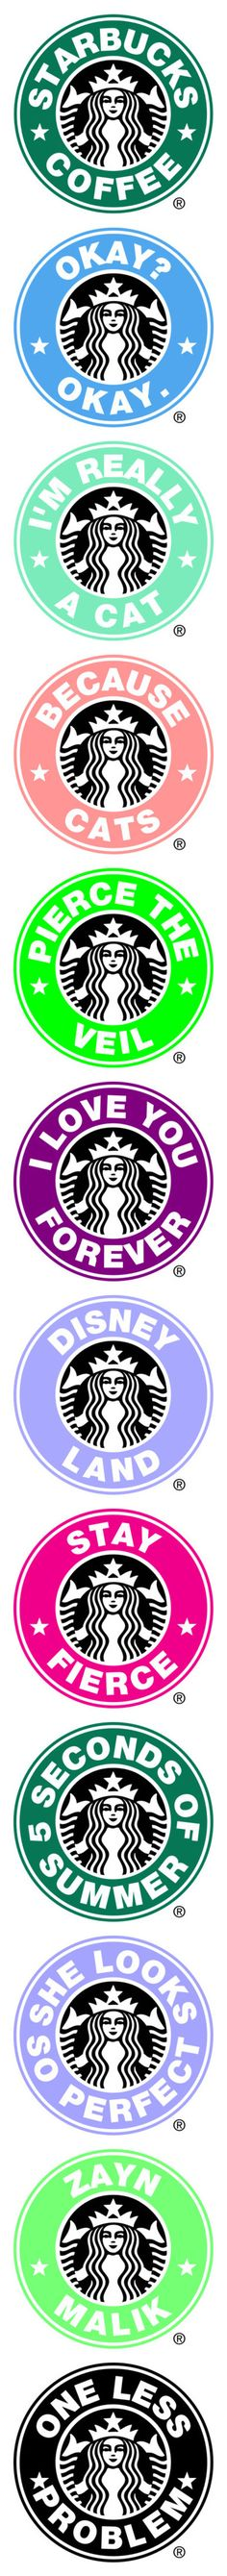 """Starbucks logo's"" by desyrae-carstensen ❤ liked on Polyvore featuring fillers, words, green fillers, logo's, pictures, starbucks logos, backgrounds, other, starbucks and bands Starbucks Logo, Starbucks Drinks, Starbucks Coffee, Peler Beads, Coffee Logo, Filofax, Easy Drawings, Cute Wallpapers, Cute Pictures"